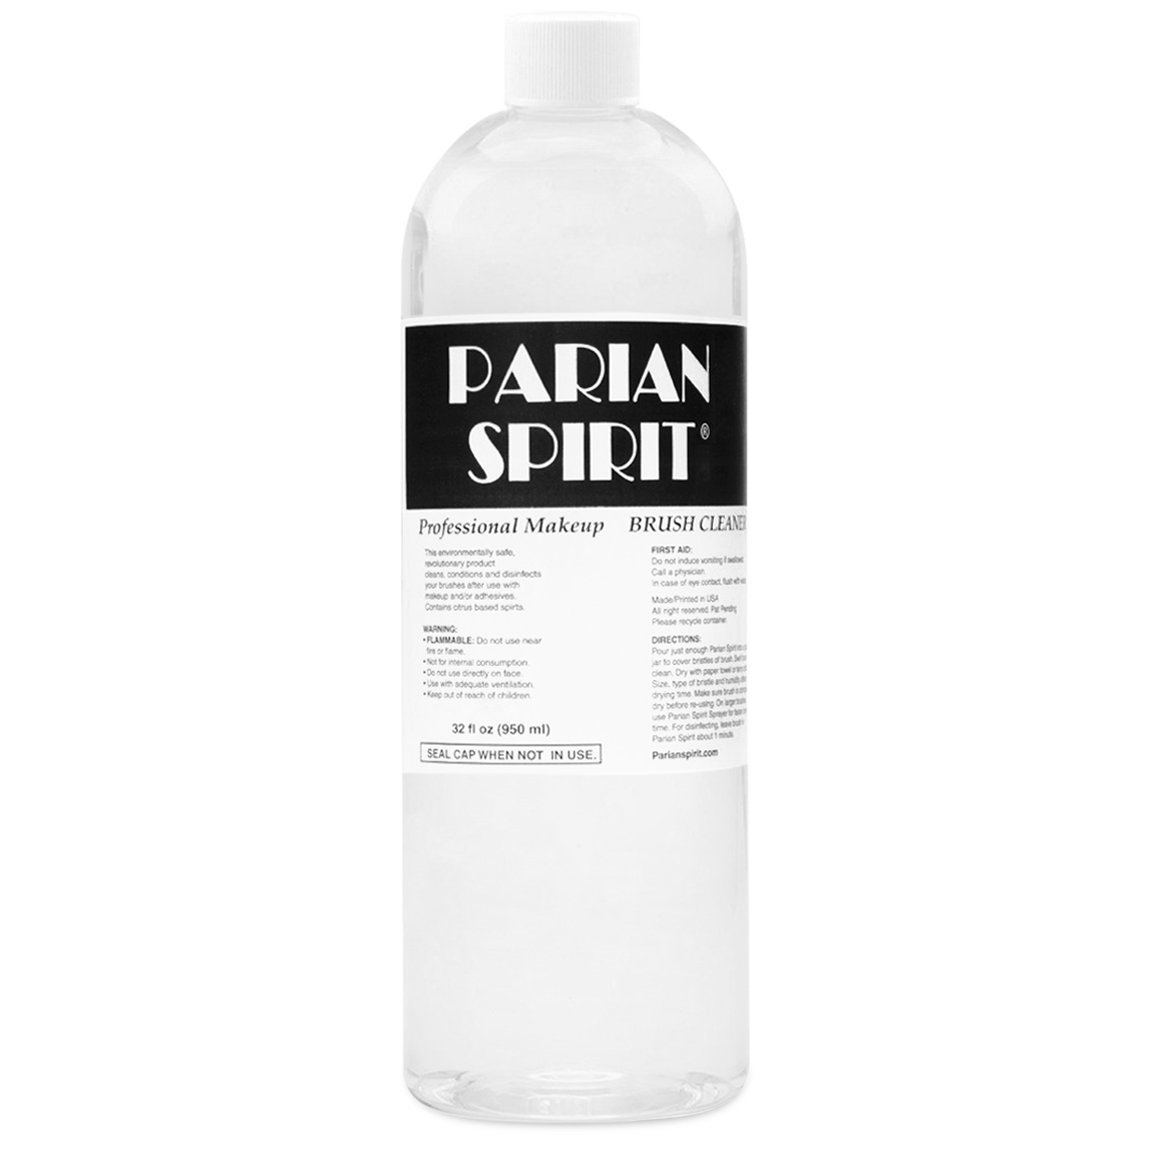 Parian Spirit Professional Makeup Brush Cleaner 32 oz alternative view 1 - product swatch.